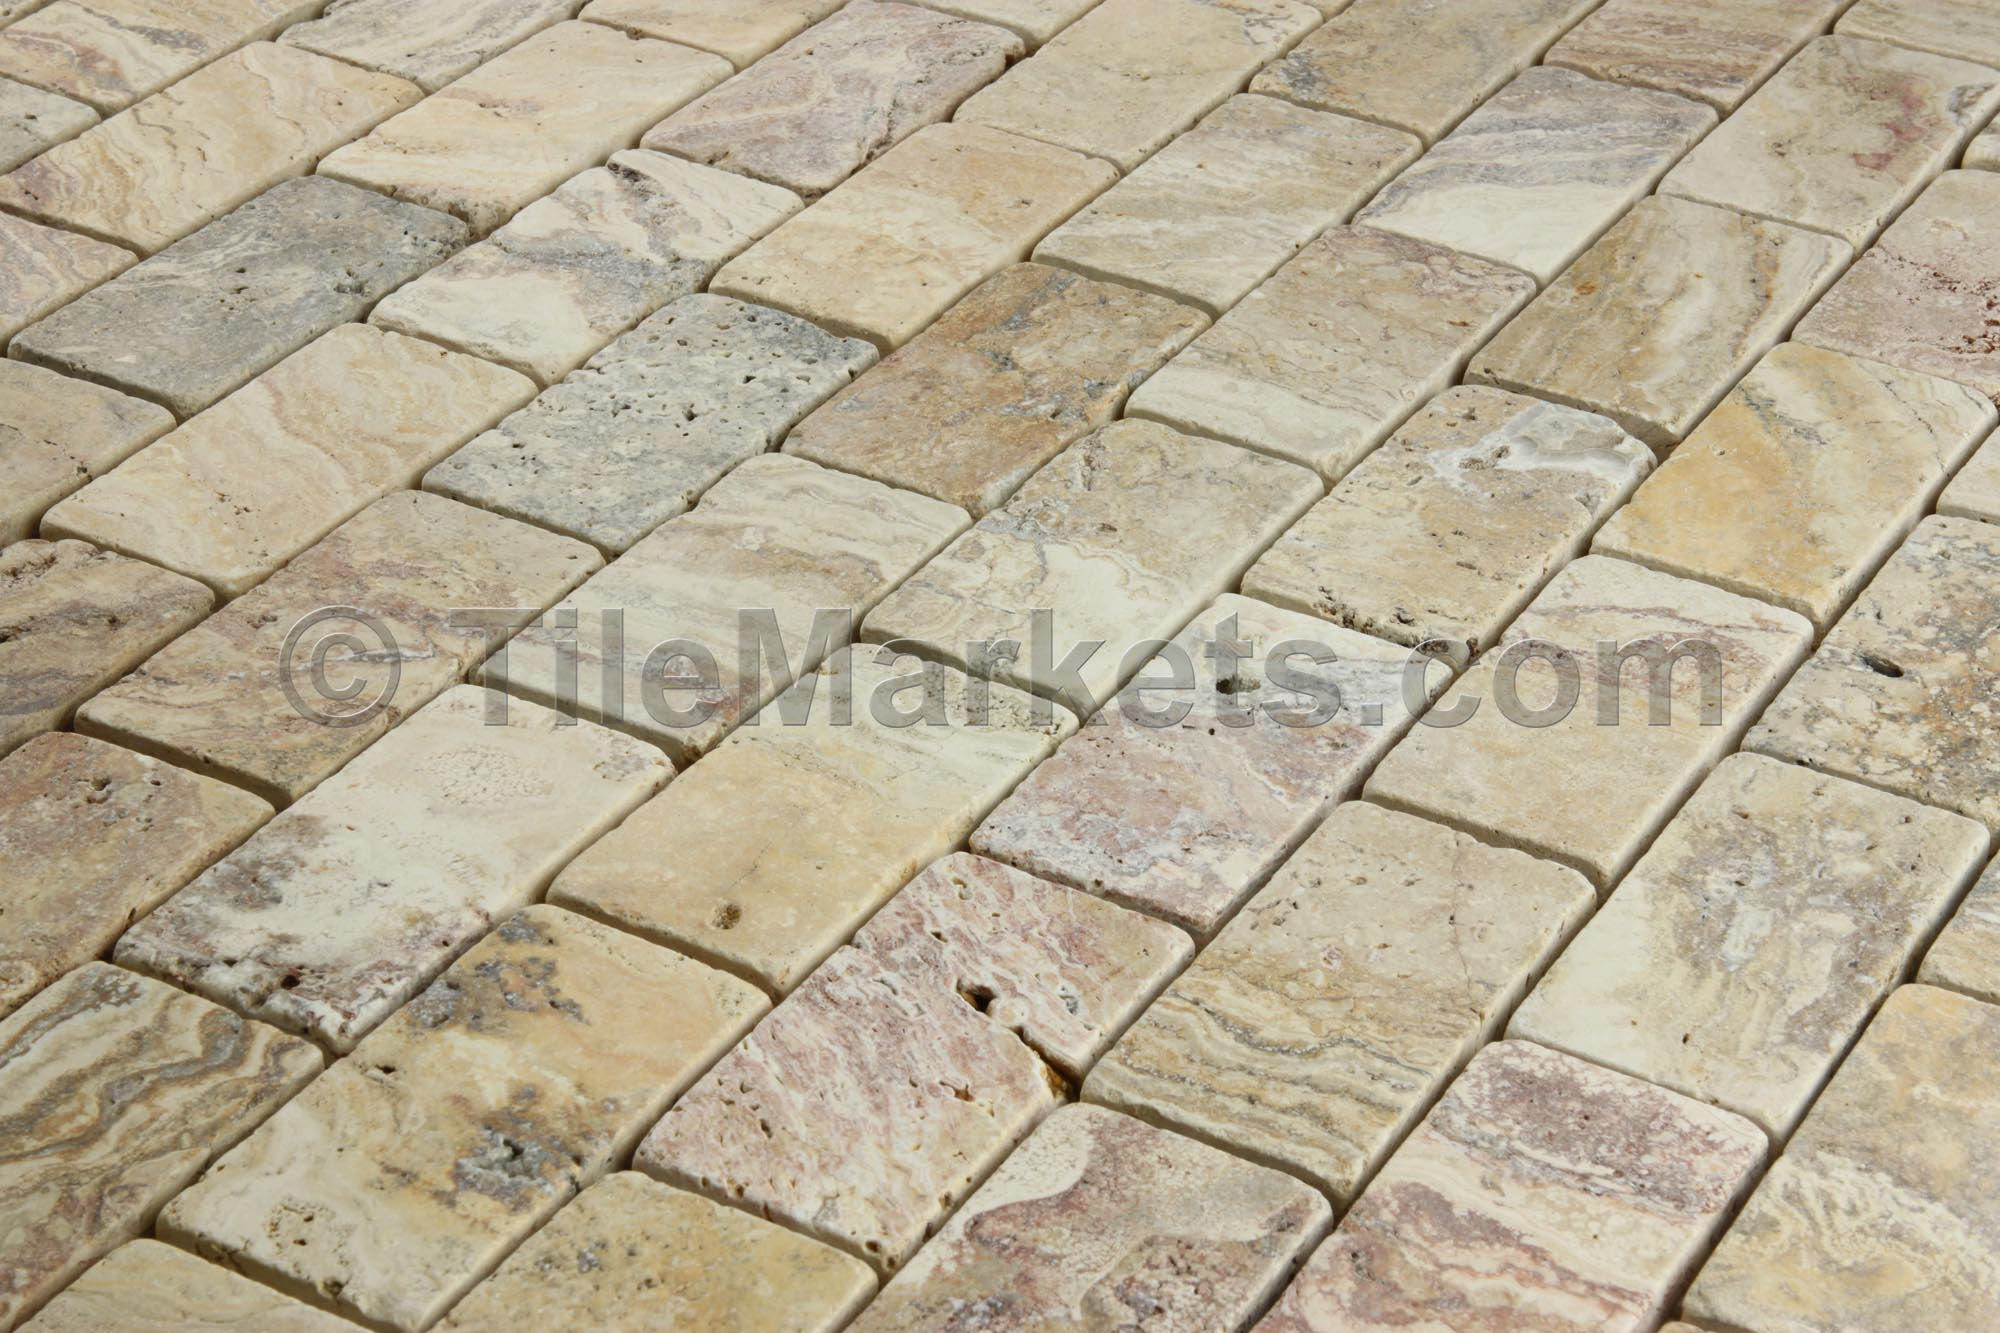 Travertine Scabos 2x4 Tumbled TileMarkets